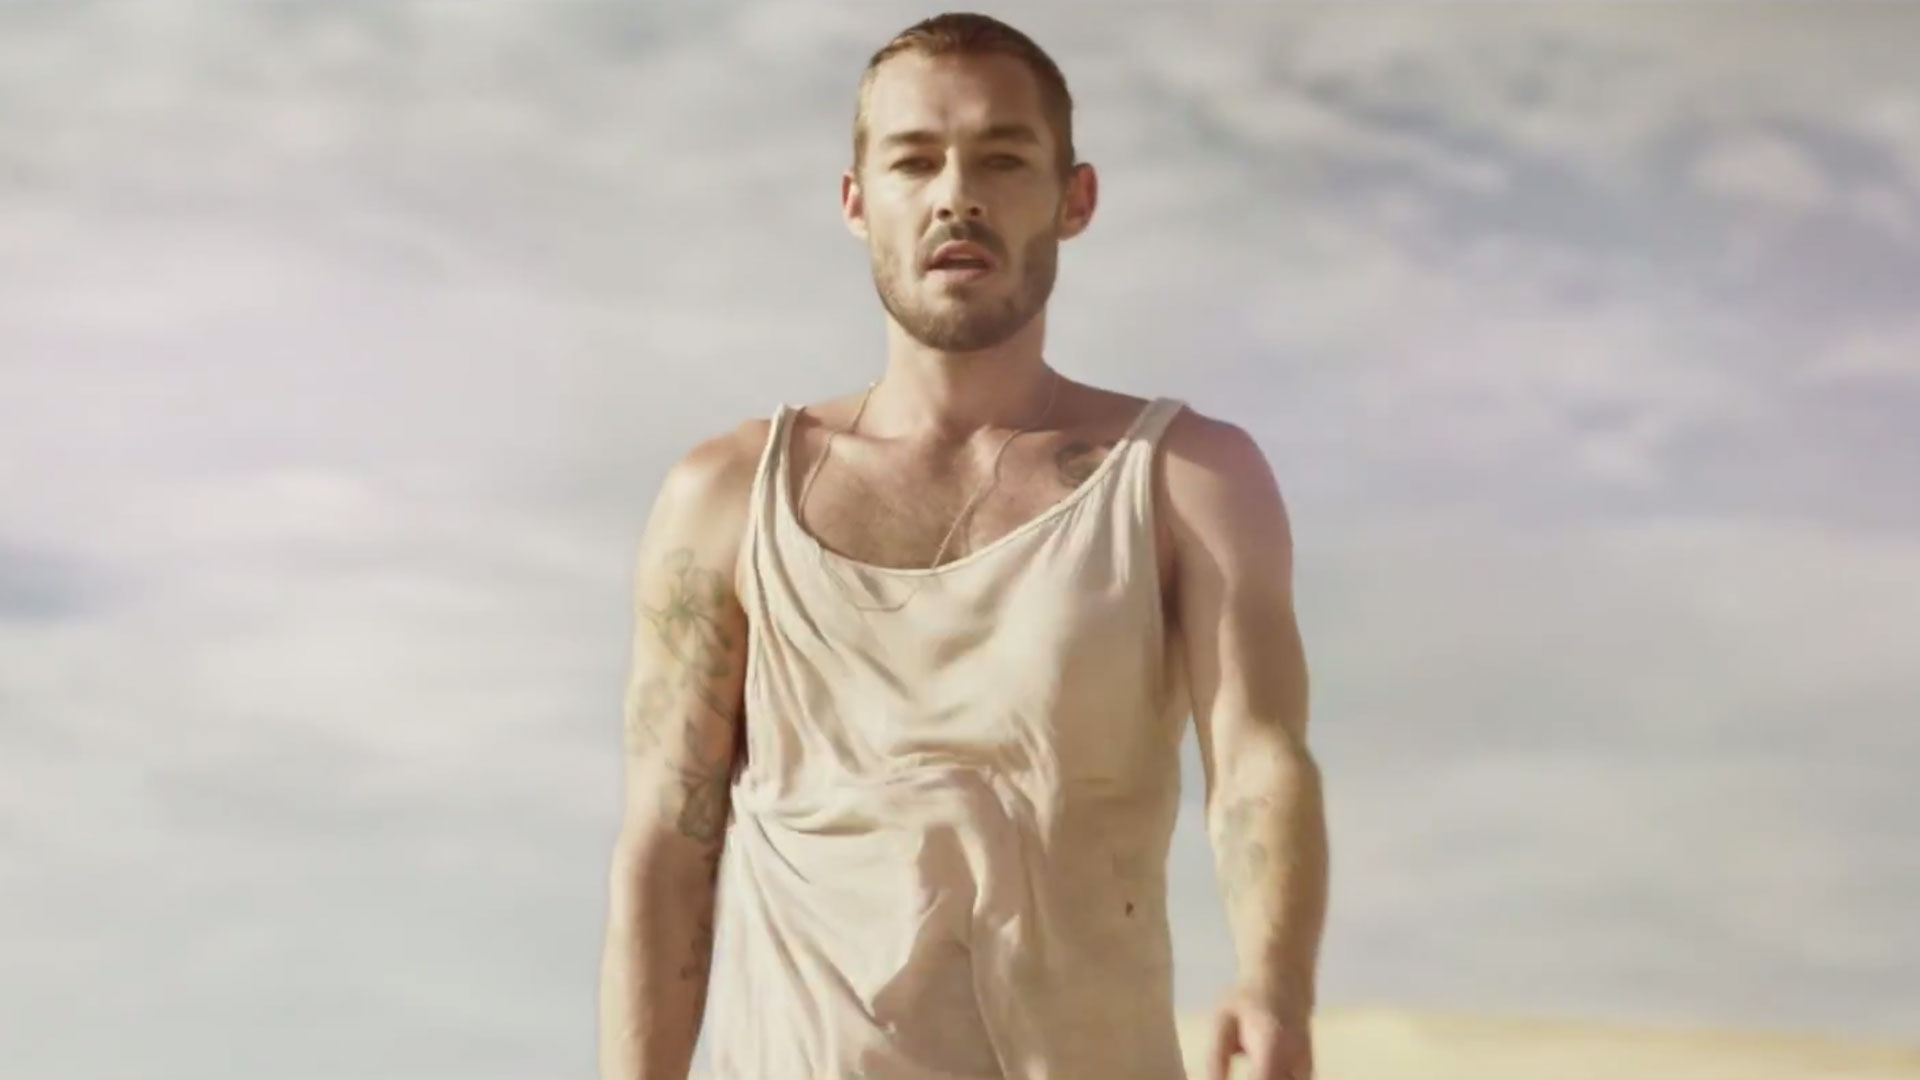 Daniel Johns Dating, Girlfriend, Wife, Bio, Net Worth